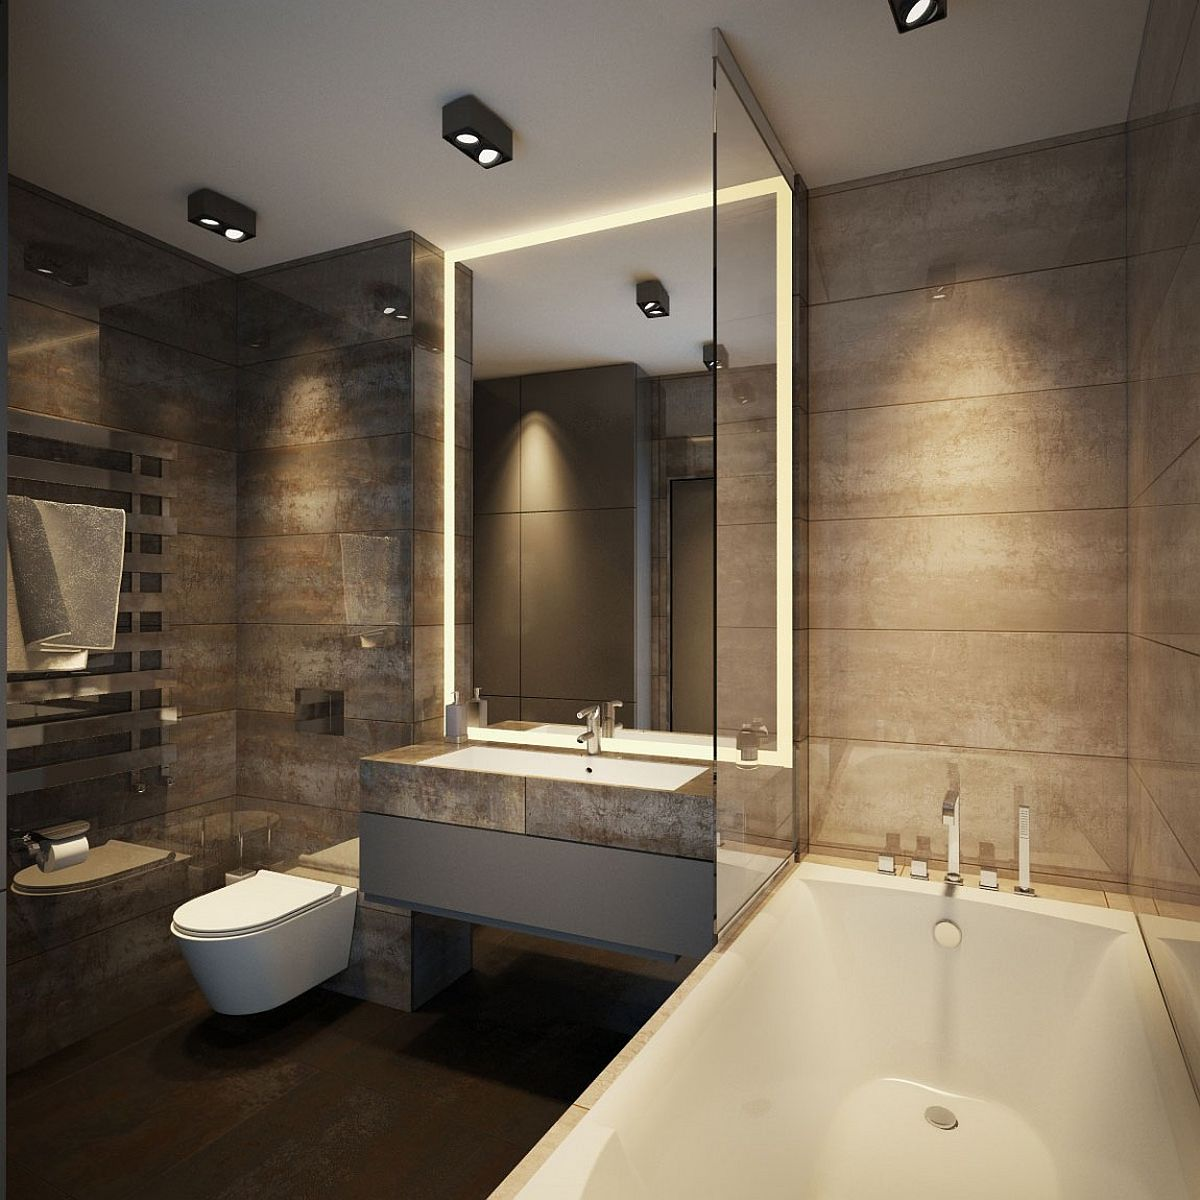 Apartment ernst in kiev inspired by posh hotel ambiance for Interior design bathroom images